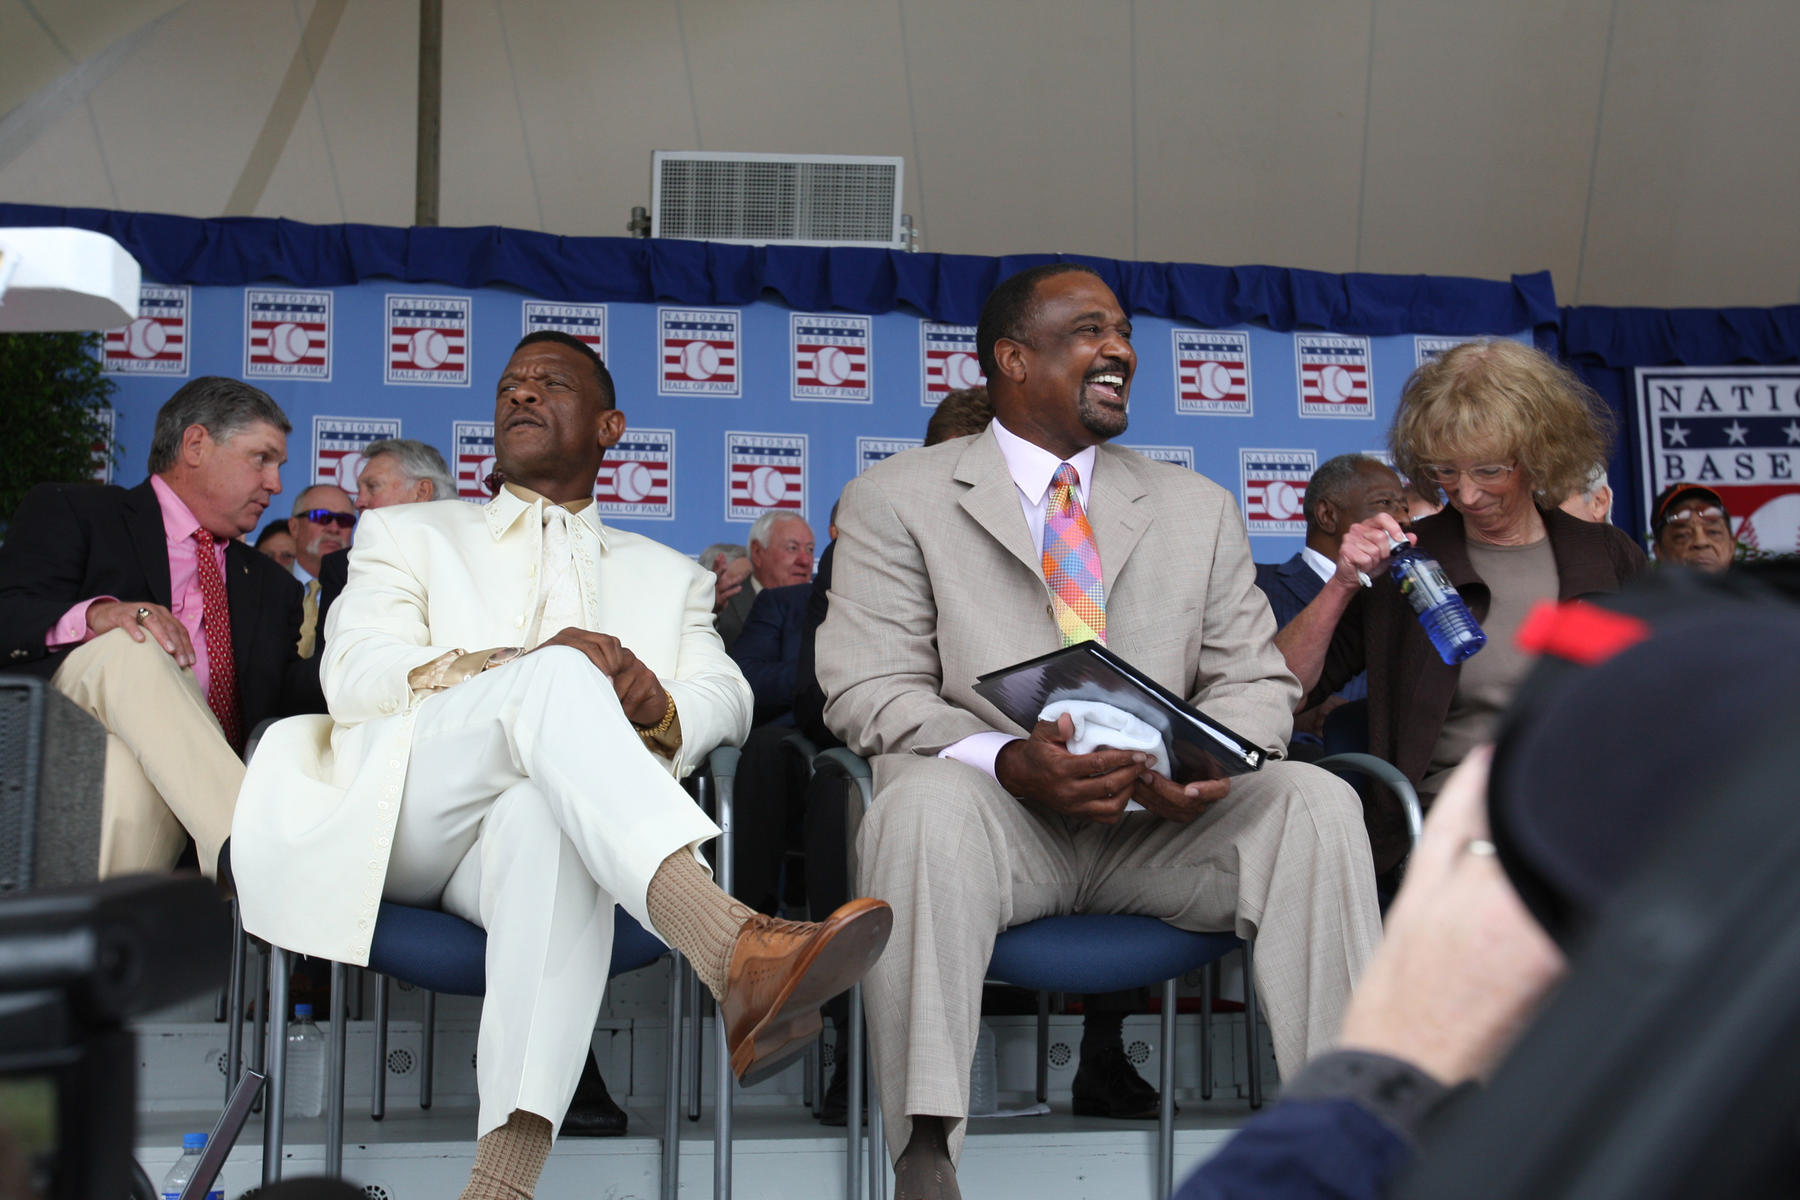 Rickey Henderson, Jim Rice and Joe Gordon's daughter, Judy, on stage during the Hall of Fame Induction Ceremony on July 26, 2009. (Bill Greenblatt / National Baseball Hall of Fame Library)